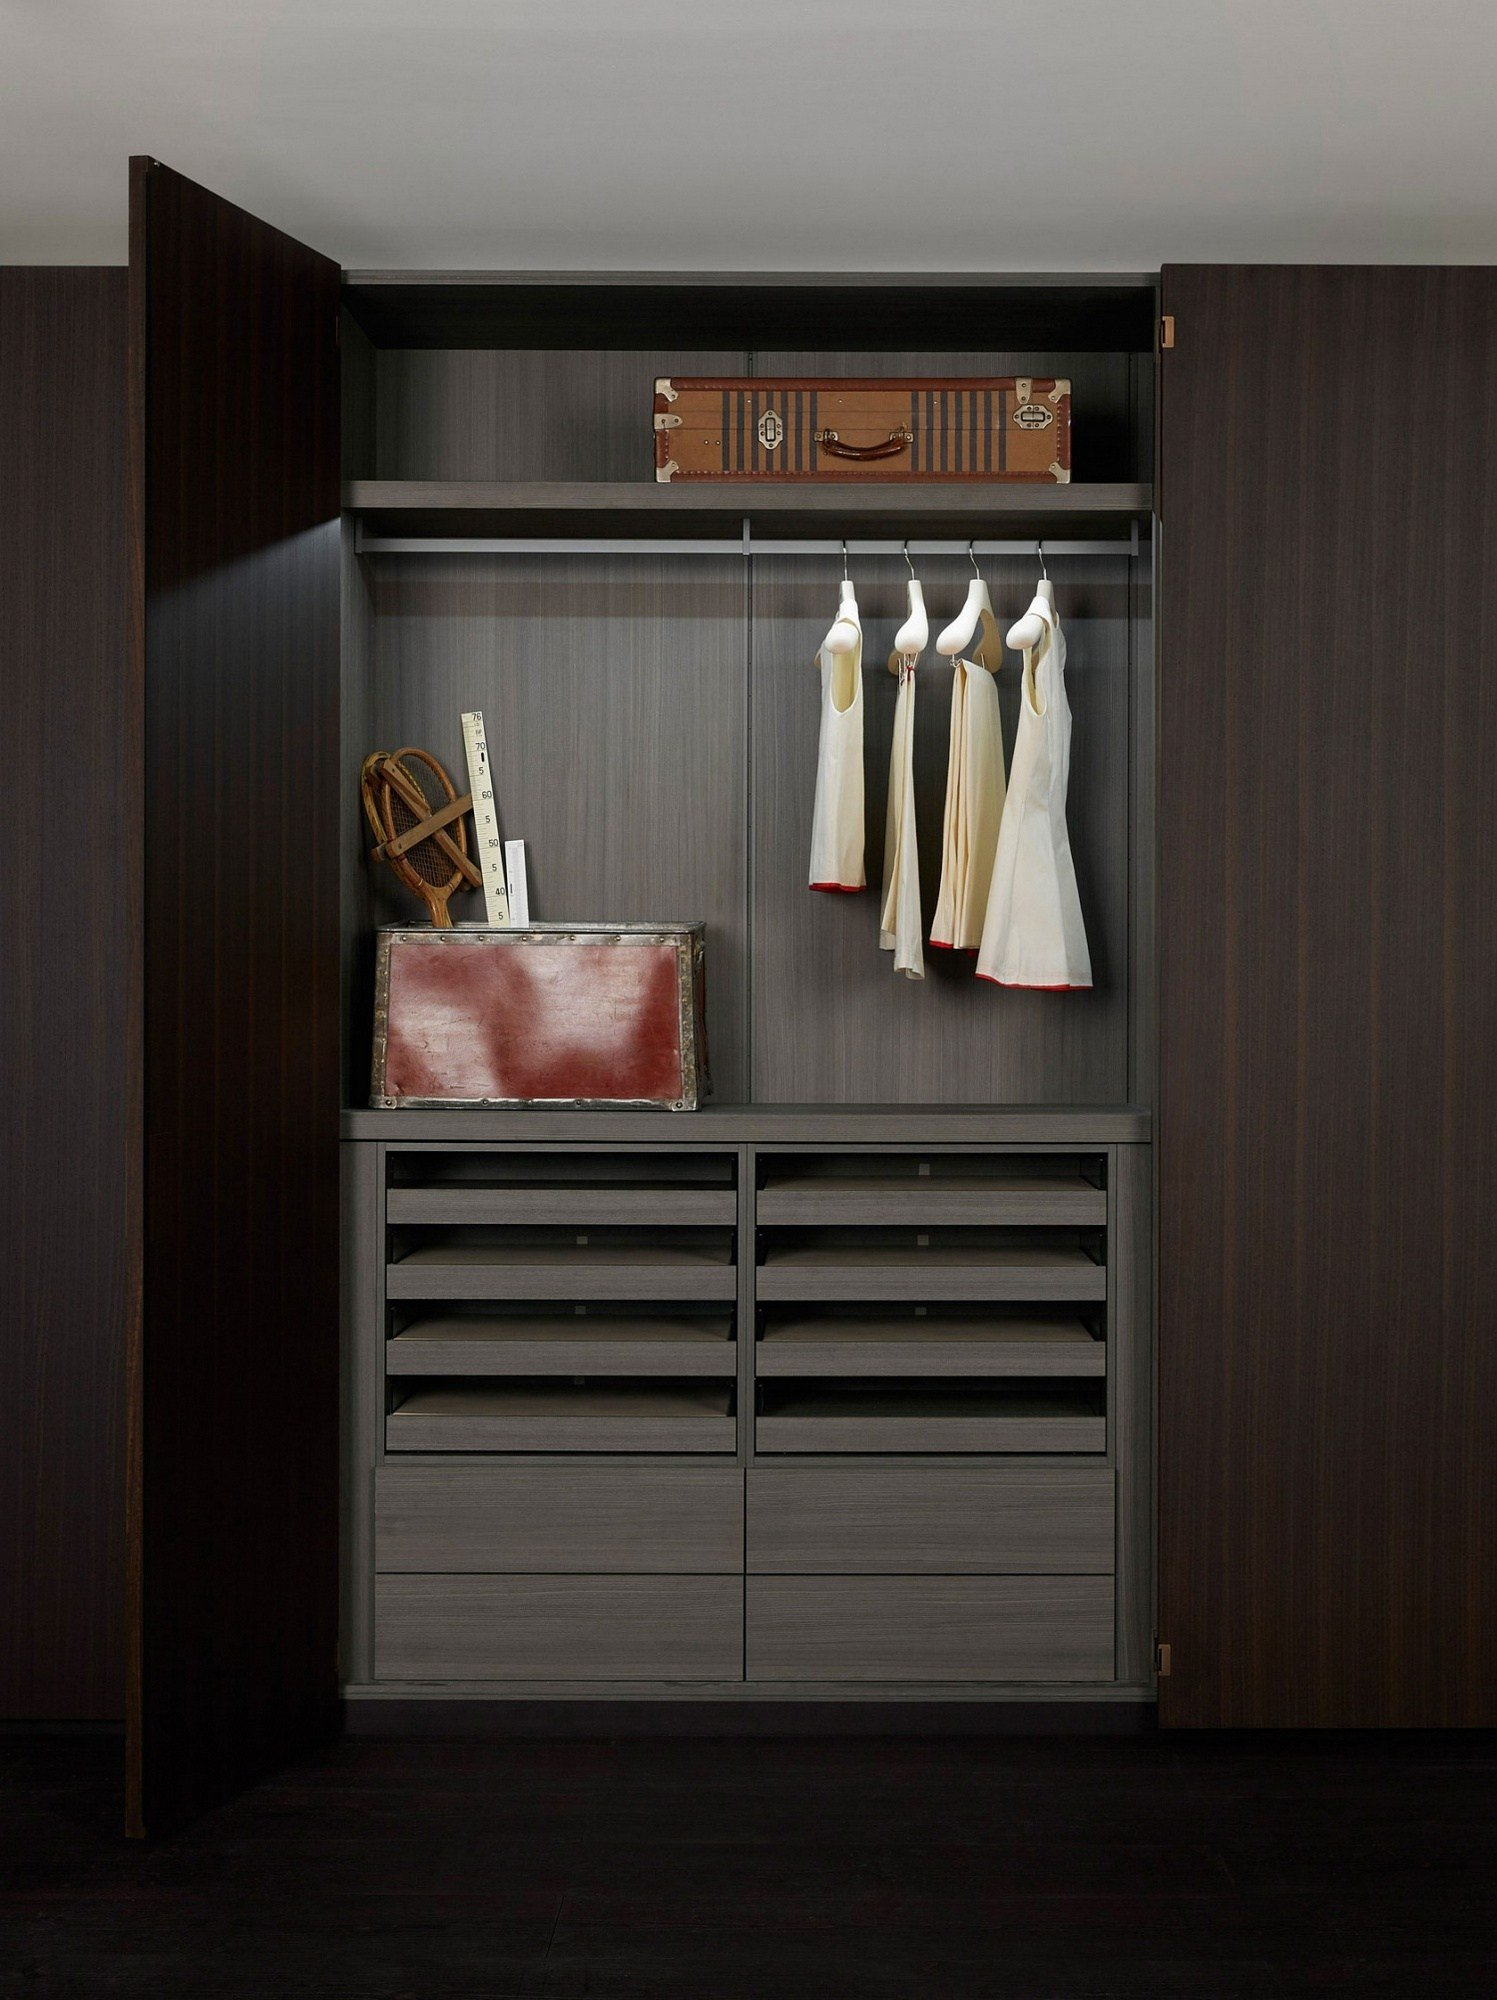 kleiderschrank nach mass storage einbau kleiderschrank kollektion storage by porro design piero. Black Bedroom Furniture Sets. Home Design Ideas